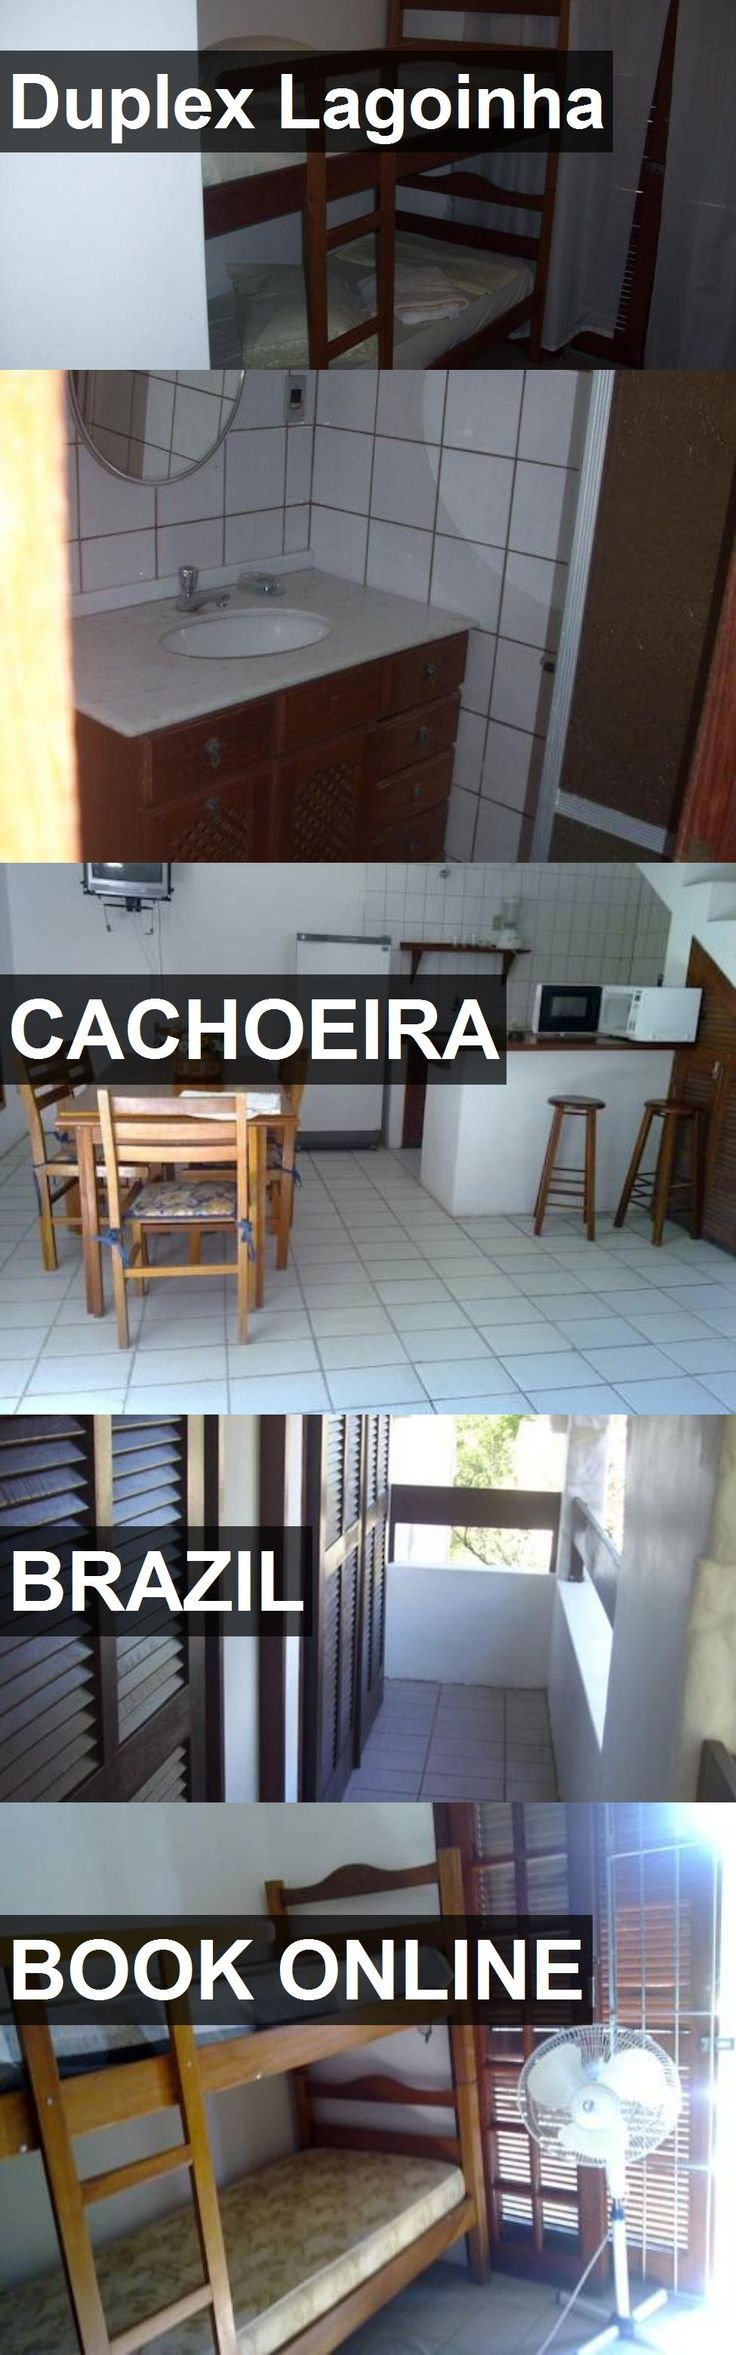 Hotel Duplex Lagoinha in Cachoeira, Brazil. For more information, photos, reviews and best prices please follow the link. #Brazil #Cachoeira #travel #vacation #hotel